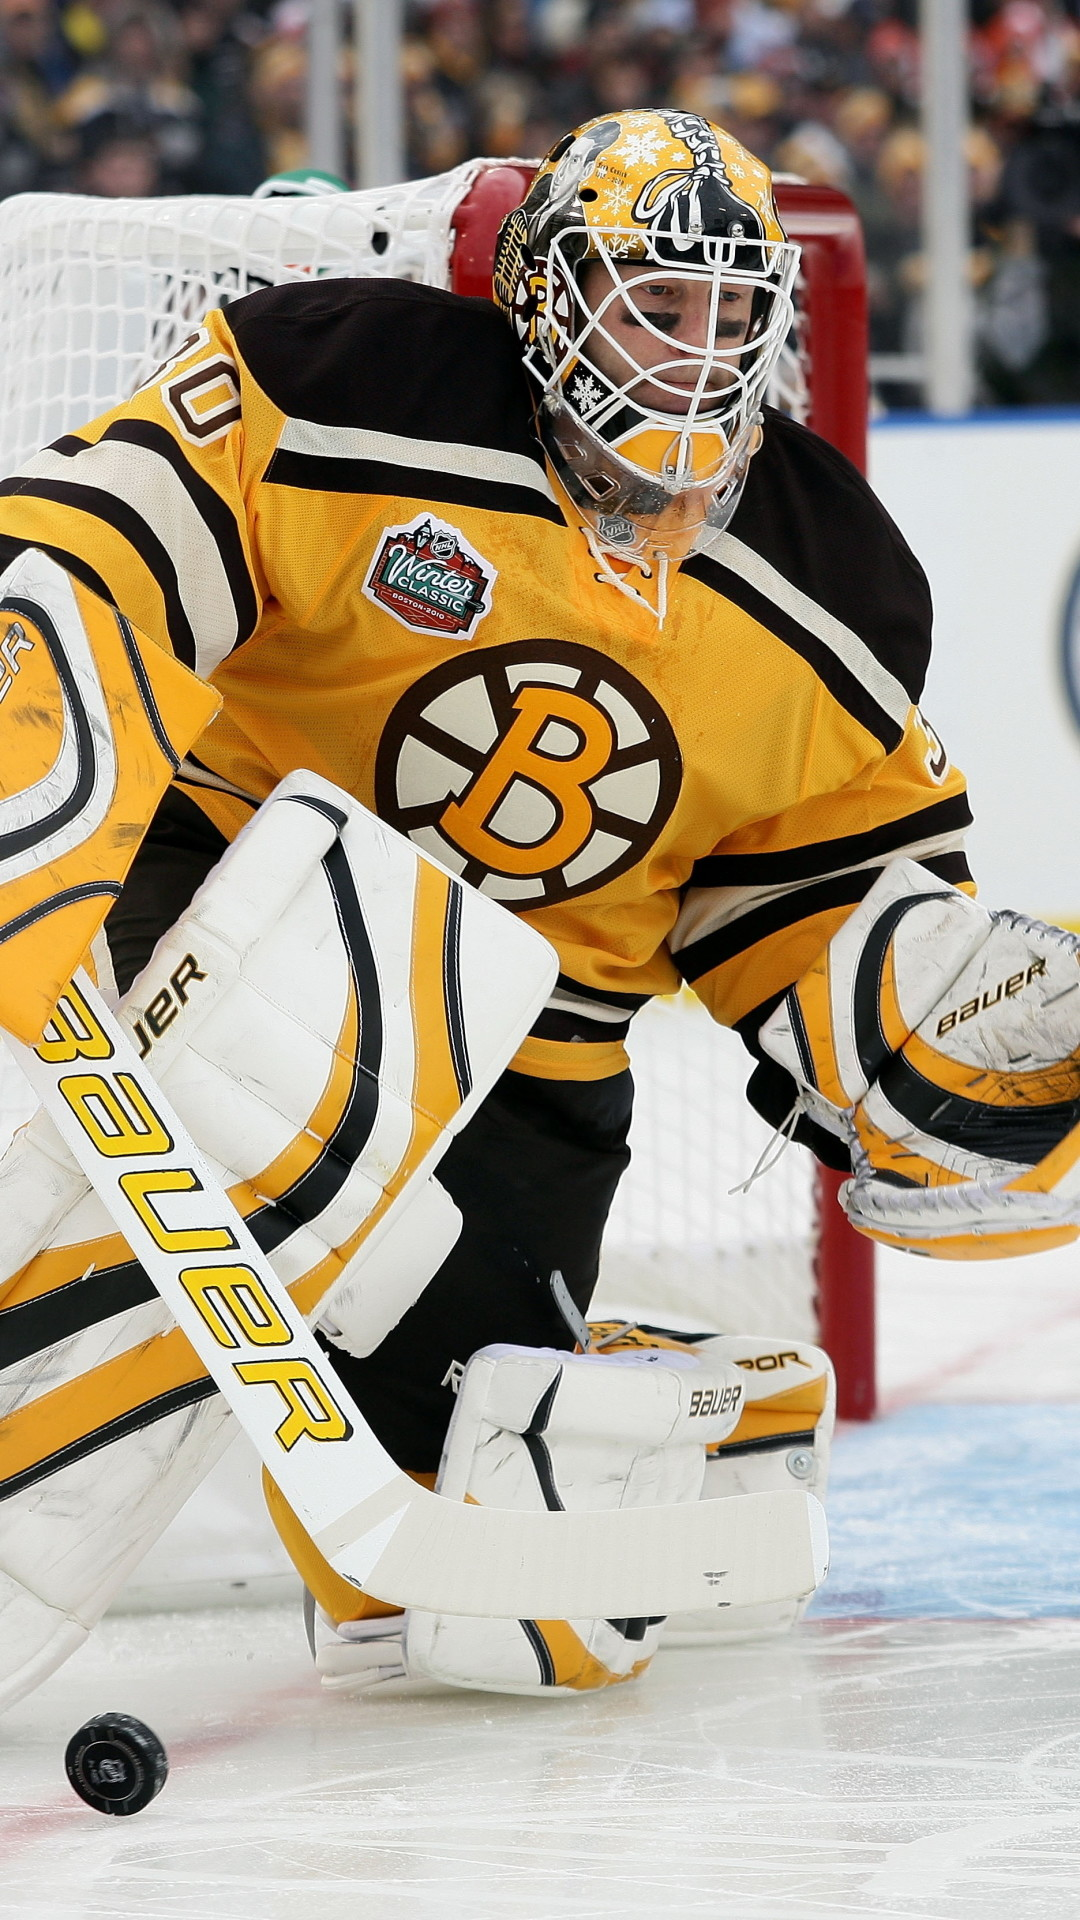 1920x1080 Boston Bruins Stanley Cup 2011